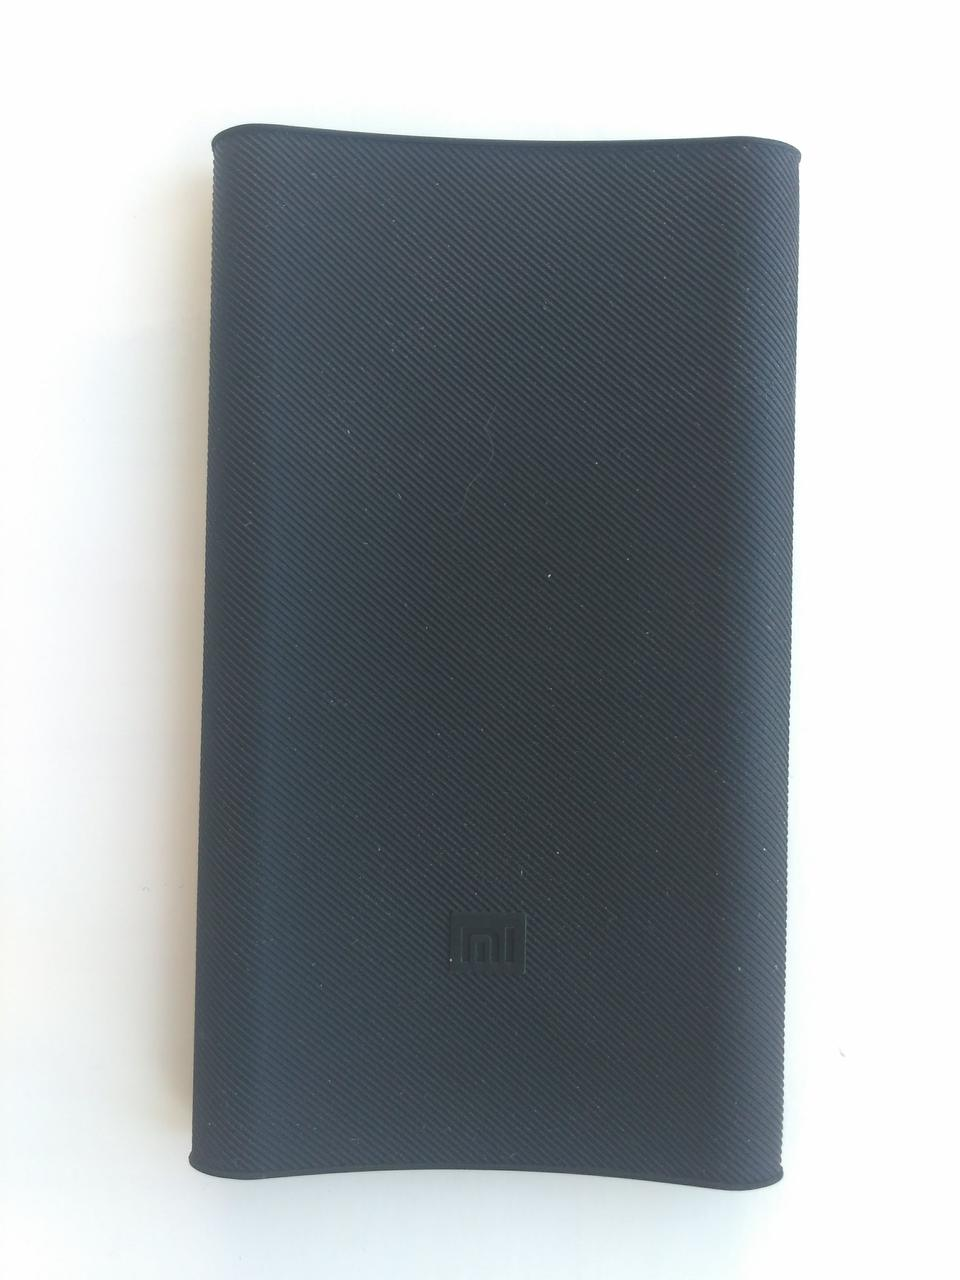 Чехол Xiaomi Power bank 2 10000mAh  черный